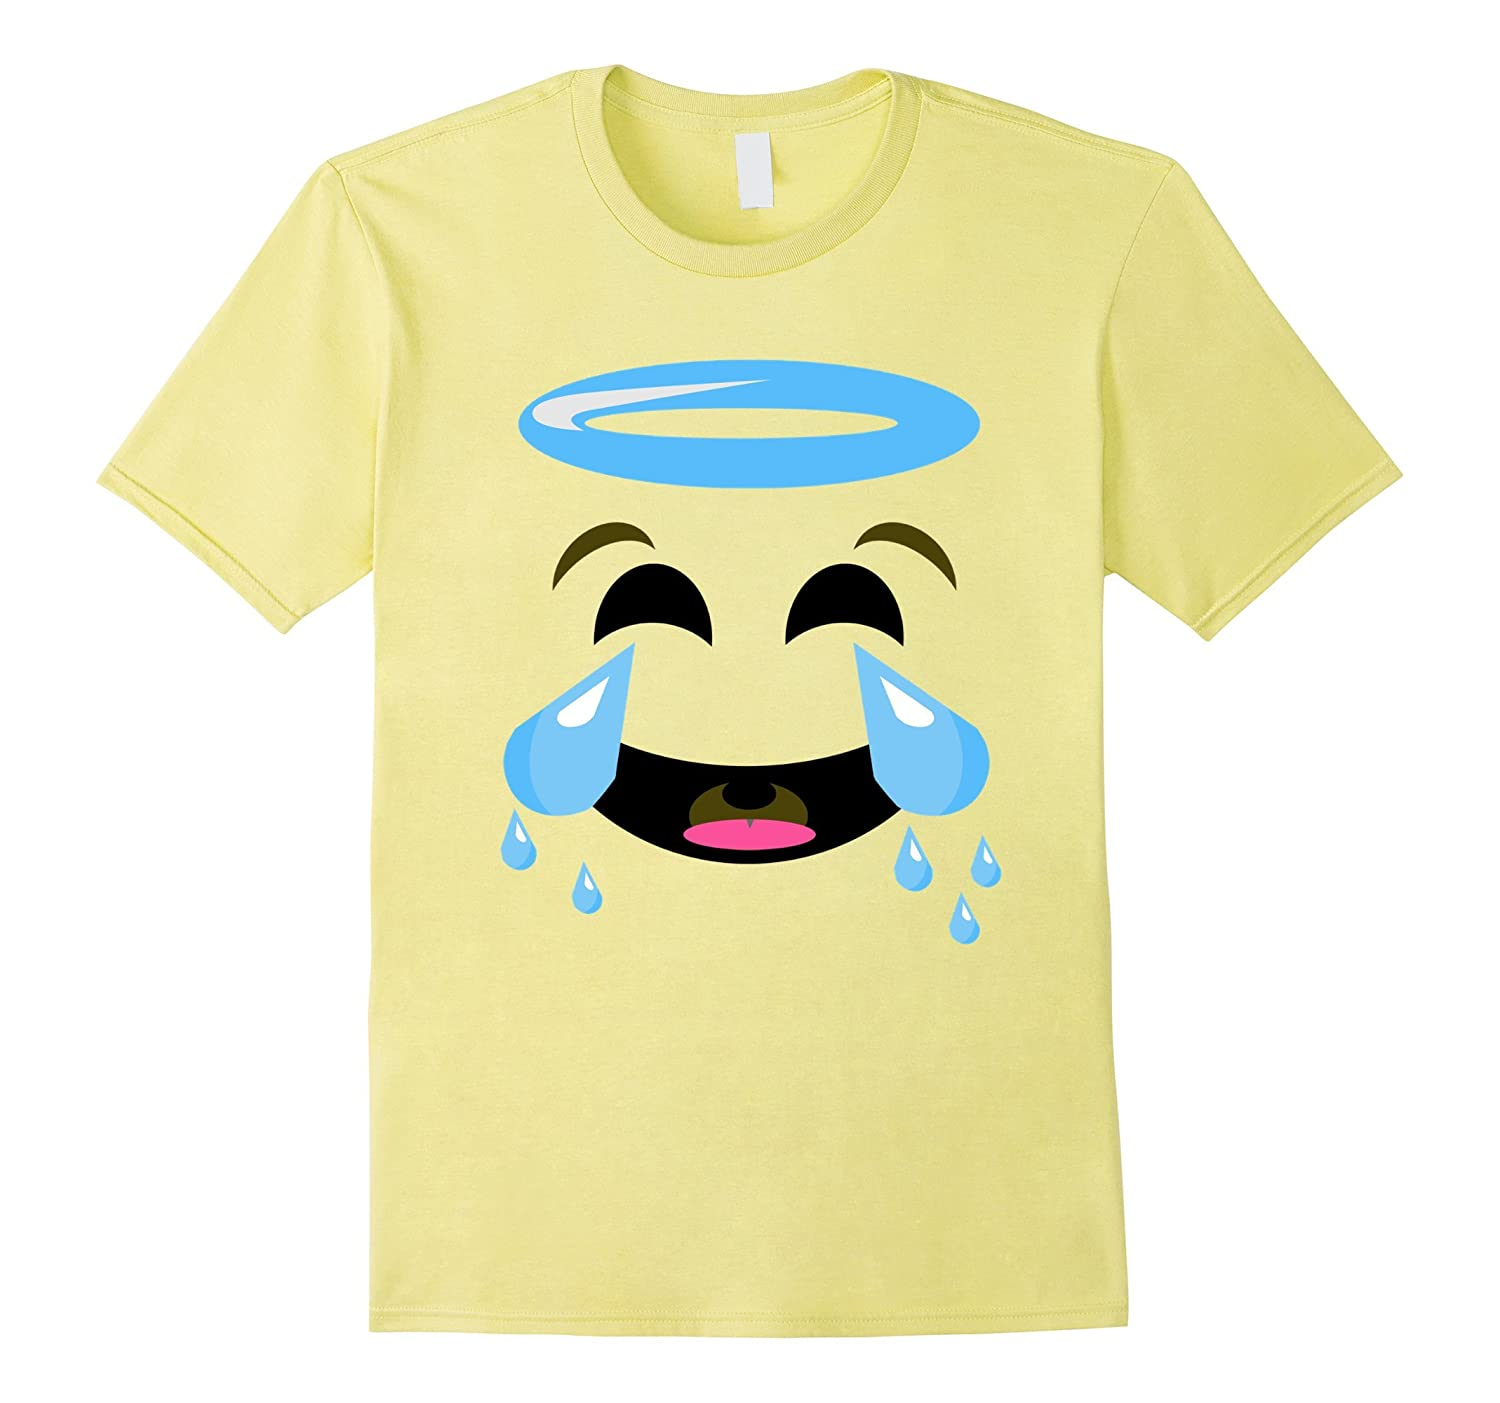 Angel Crying Face Funny Emoji Shirt - Group Couple Halloween-FL